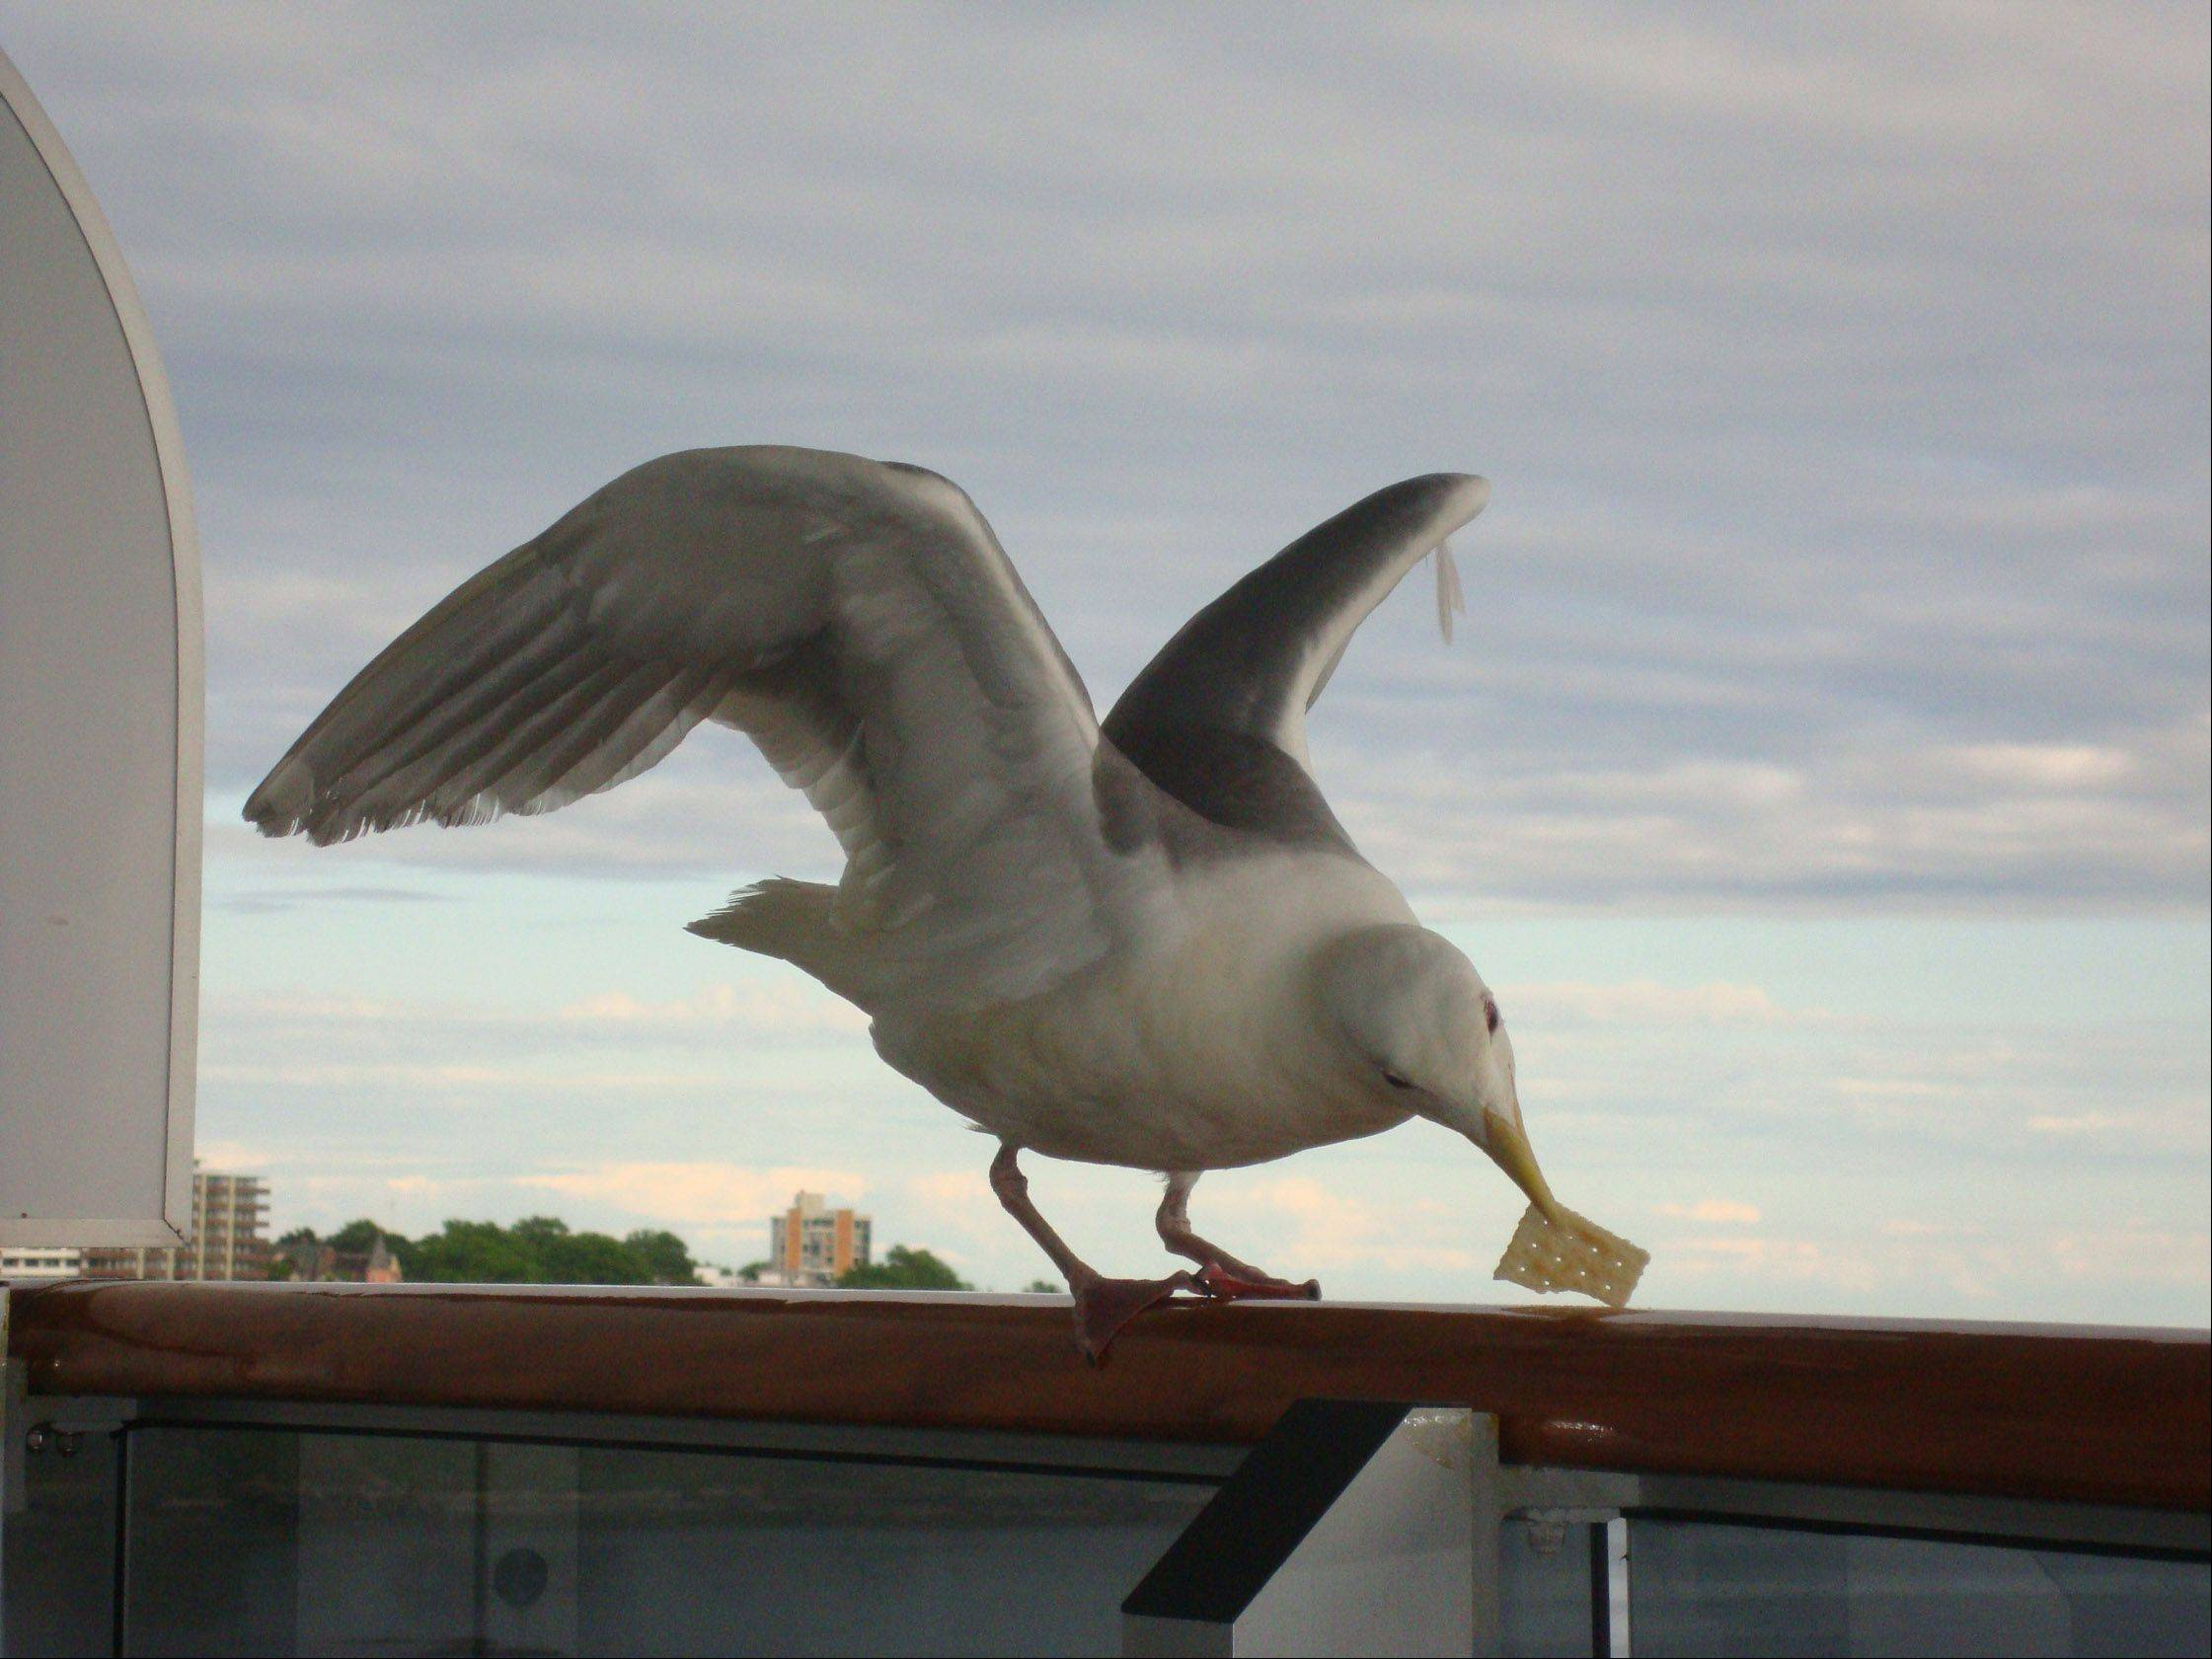 A gull eats a cracker on a cruise ship balcony in Victoria, British Columbia on June 1.